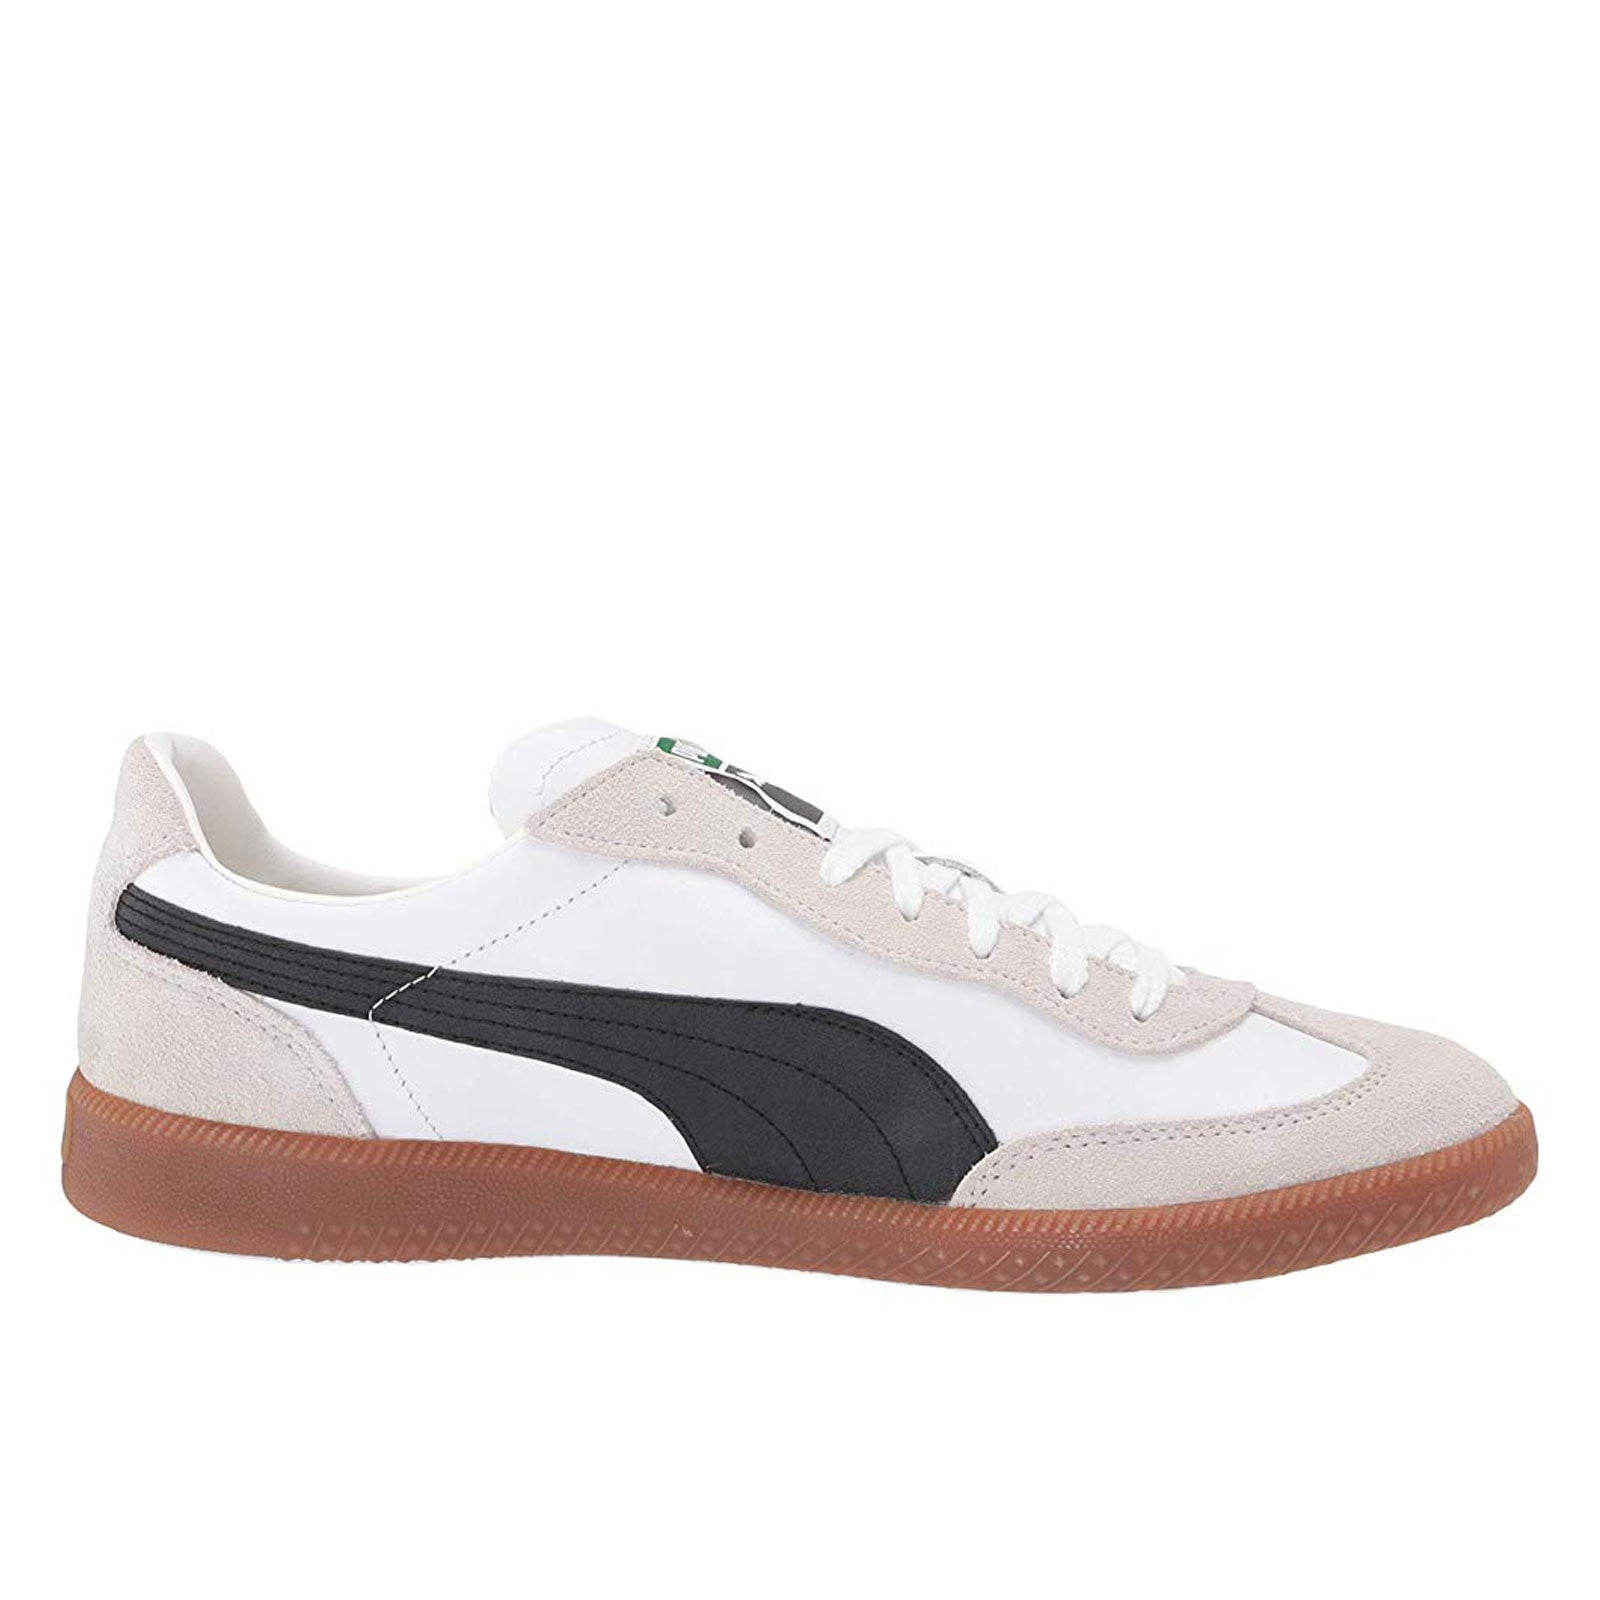 Puma Super Liga OG Retro 35699912 (White / Black)